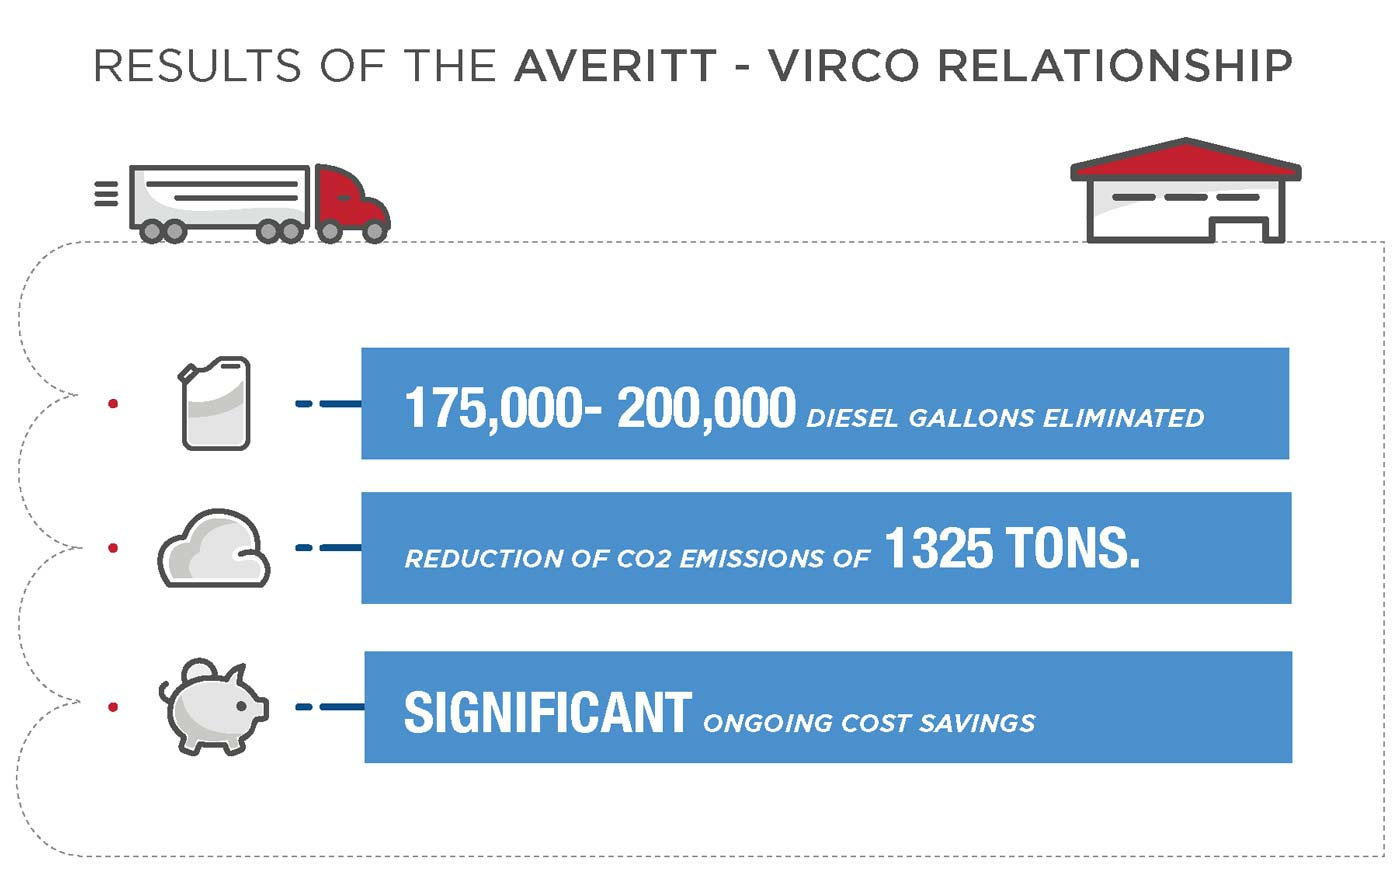 Virco saves with Averitt